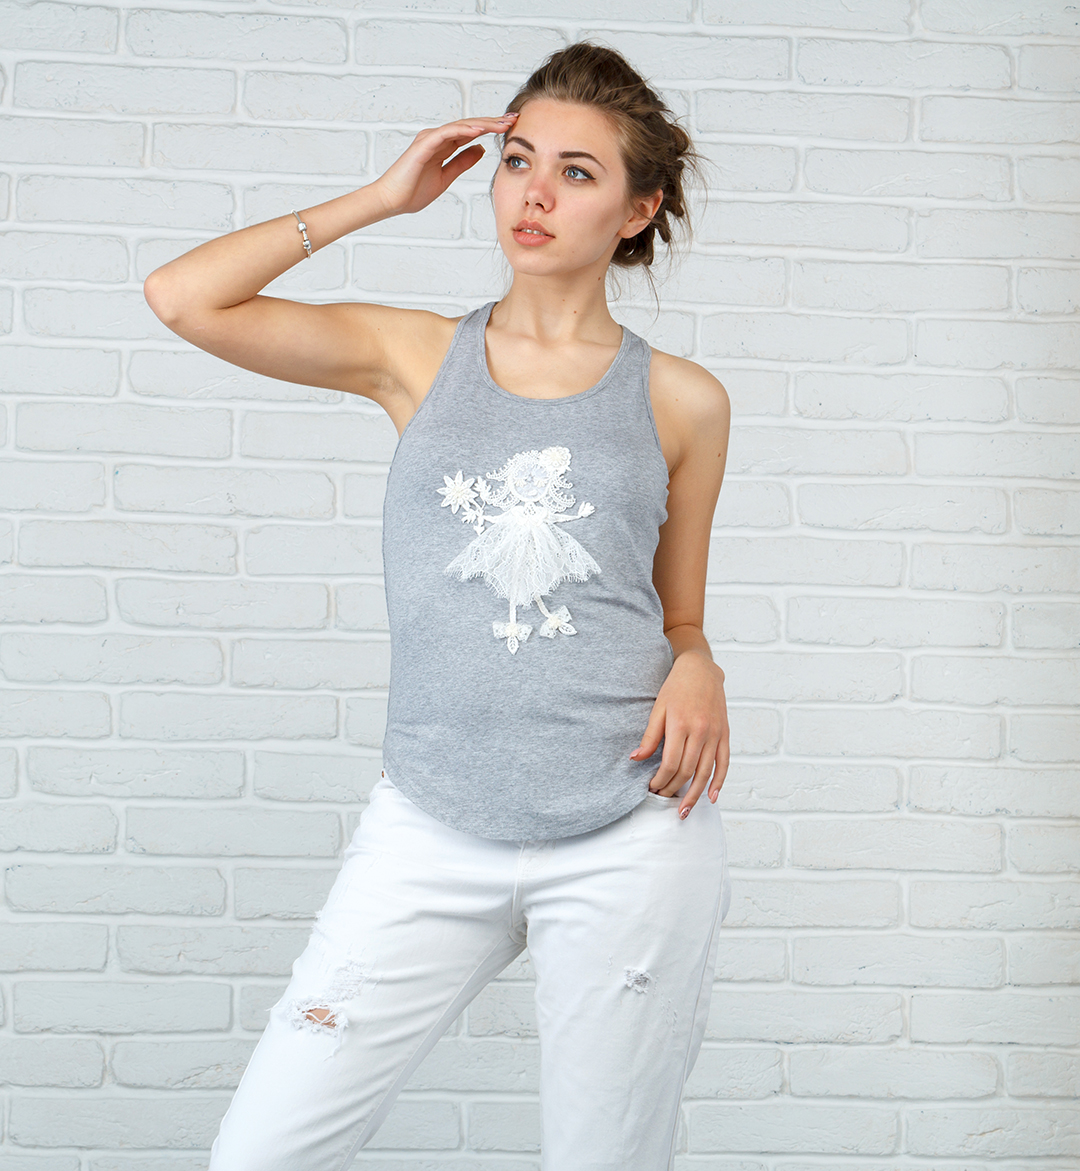 a78193629df31 Buy Lily - TANK TOP casual in O J FASHION webstore